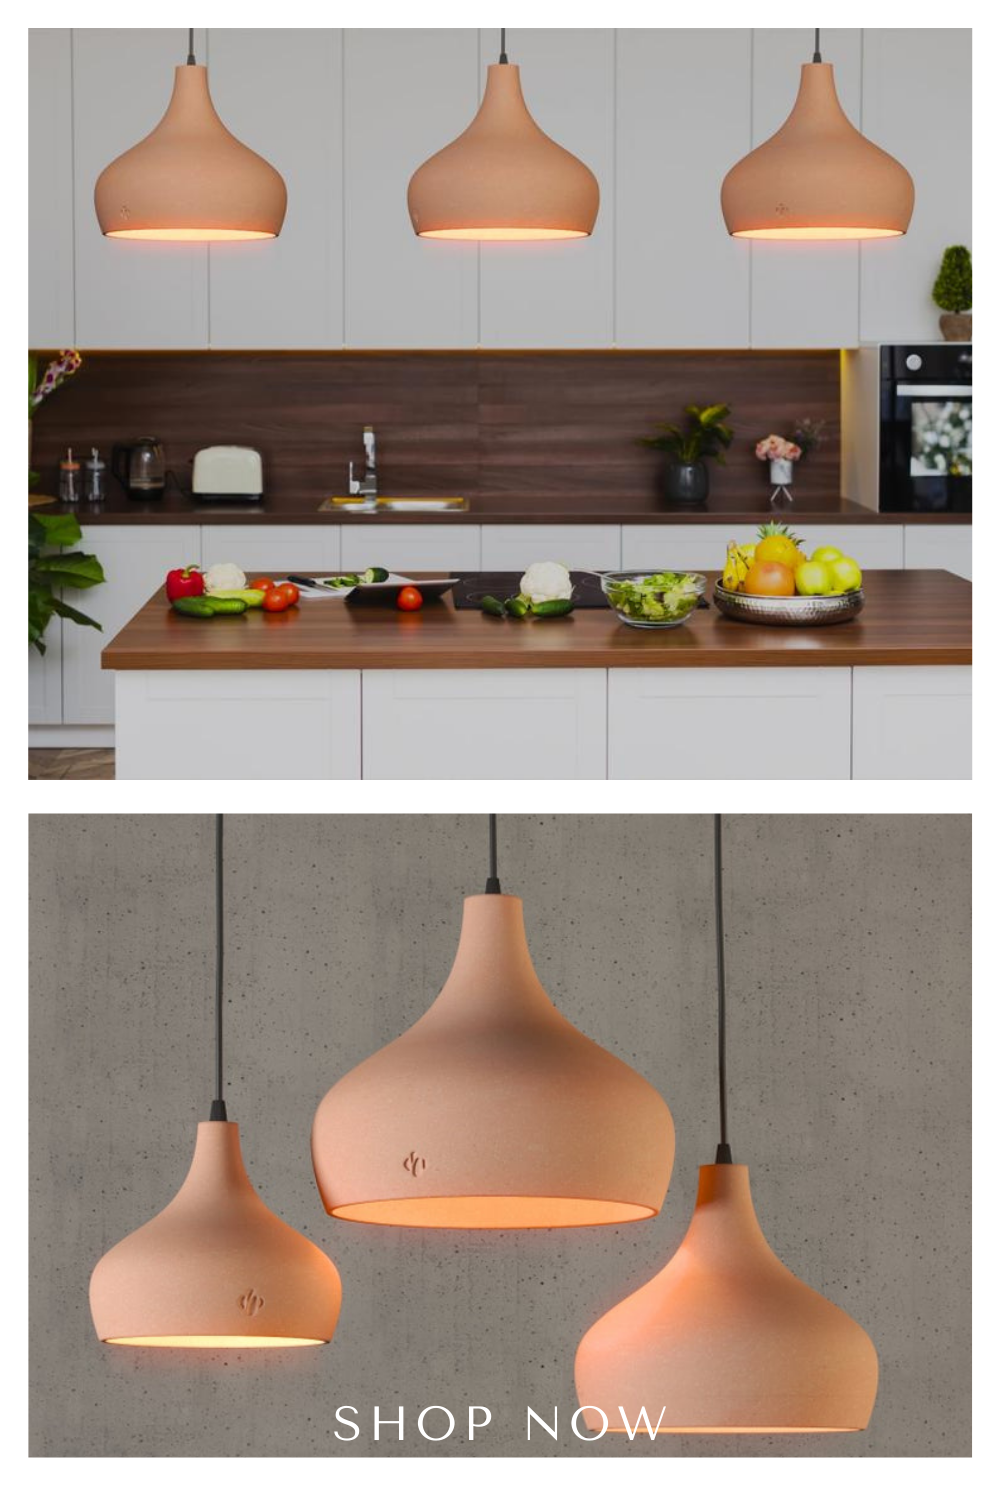 The sleek and modern design that adds the natural feel to you surroundings. Perfect for Kitchen island, Dining Bar, Restaurants, cafes. Available in 3 different sizes and Plug in/Hard-wired. Pin it to shop this look. #Naayastudio #ceramiclighting #pendantlight #naturalbrownbisque #diningrooms #kitchenislandlighting #diningbar #livingroomdecor #banquette #homedecor #homeimprovement #hospitalitydesign #restaurantdesign